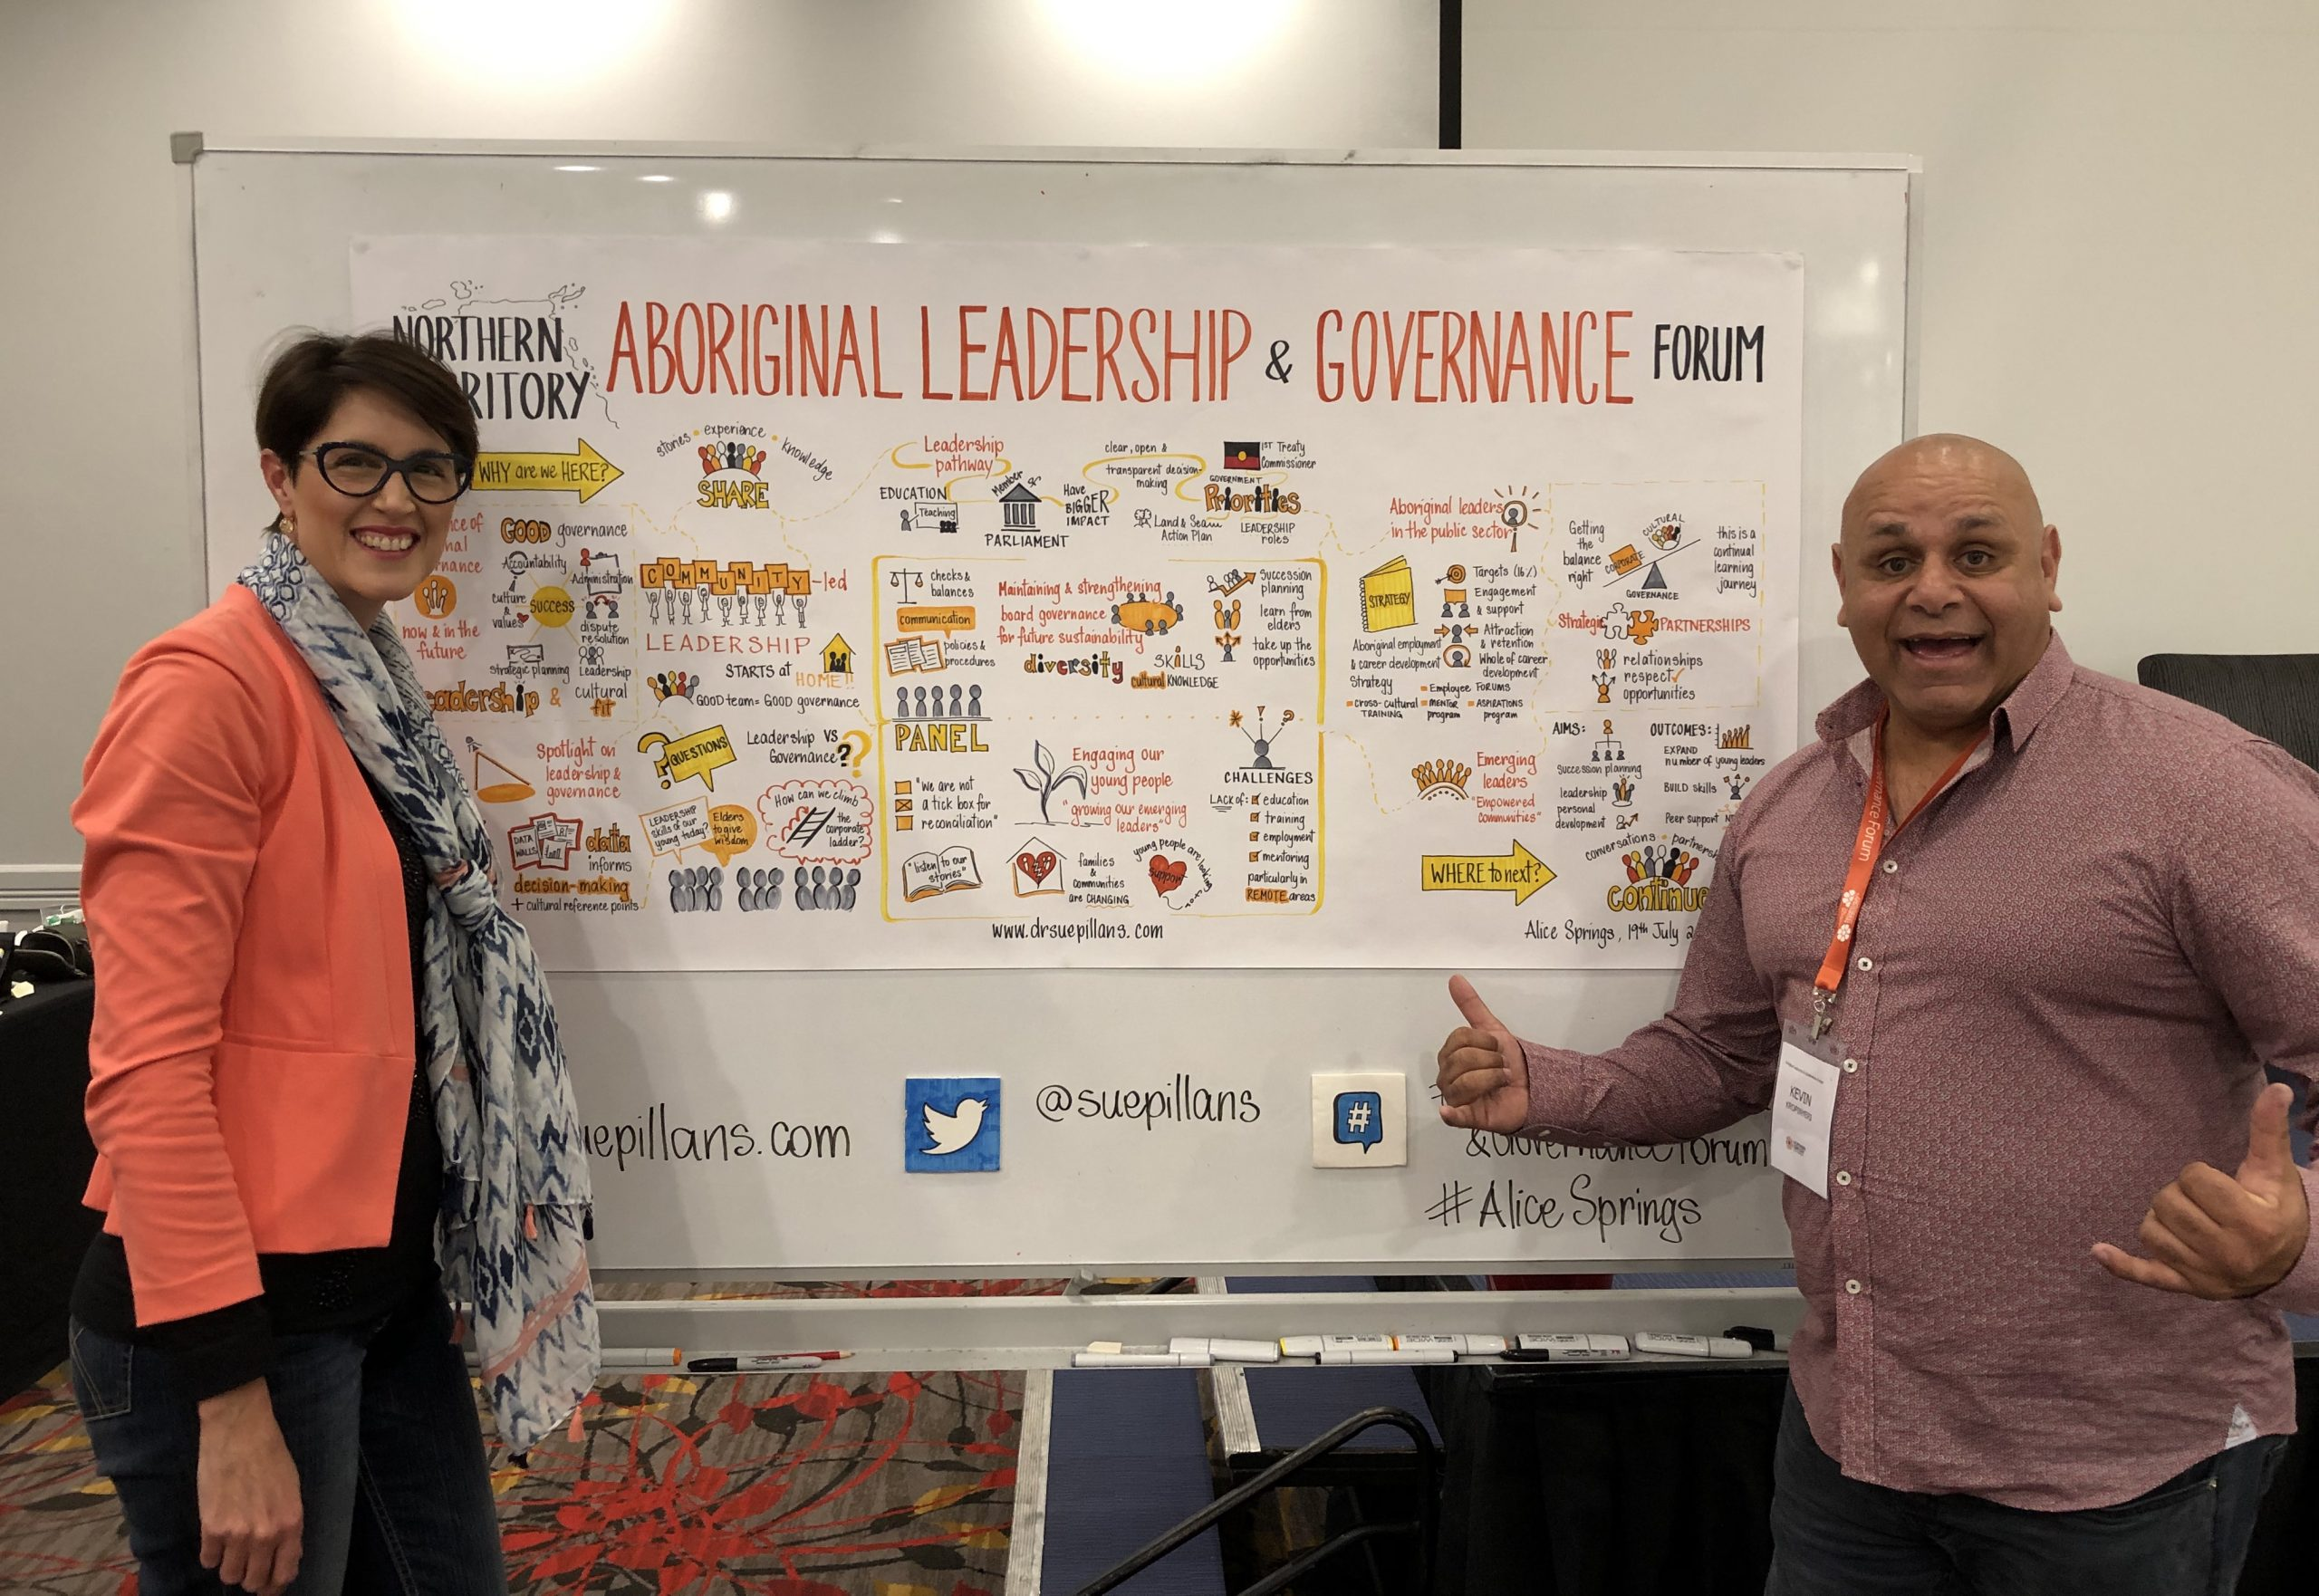 NT Aboriginal Leadership & Governance Forum